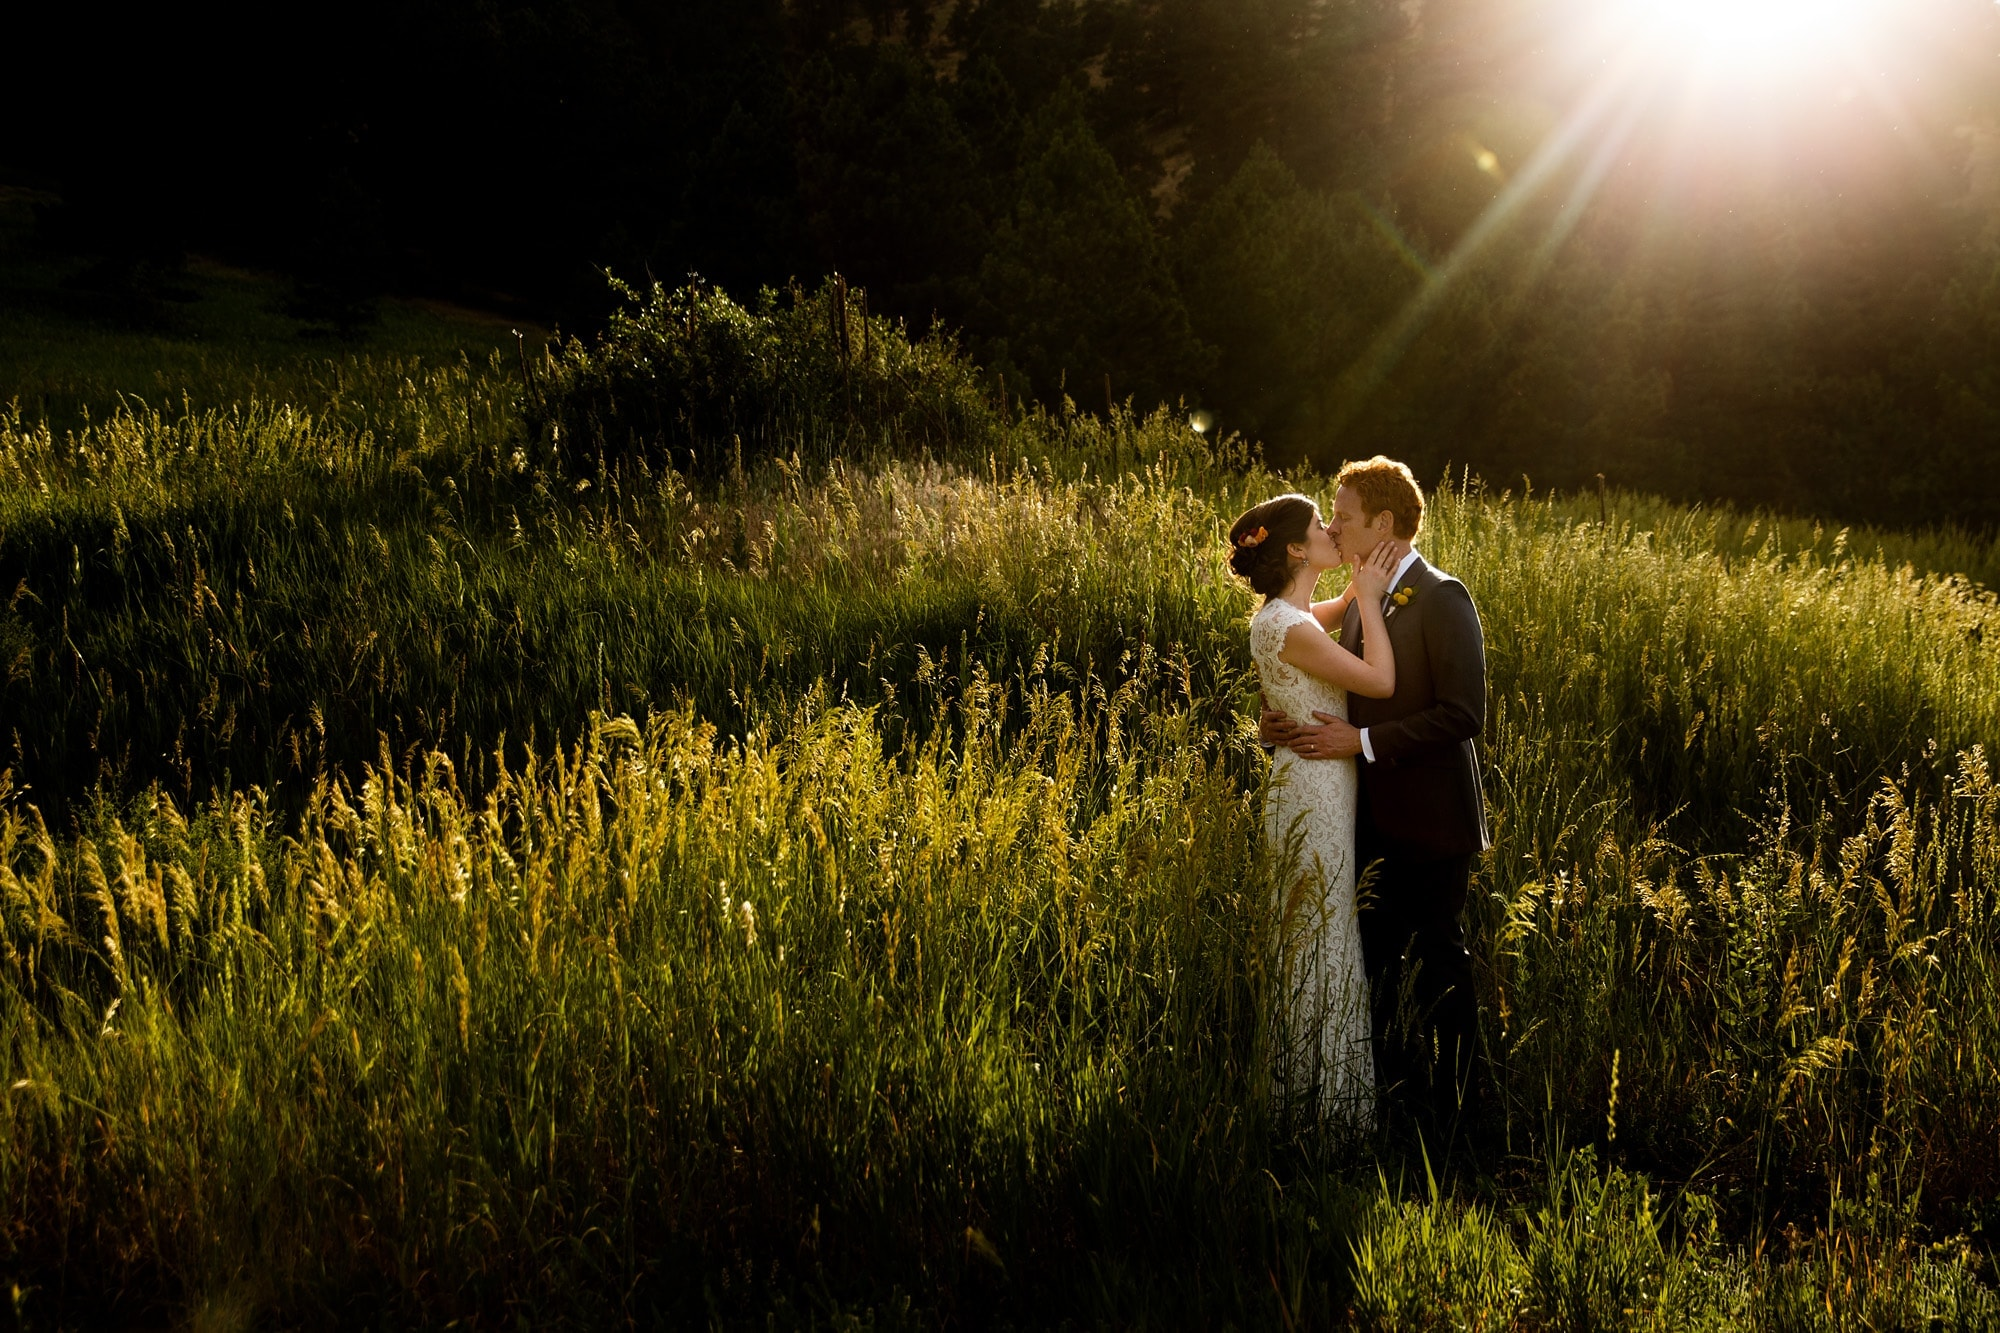 The sun flares over the couple as they kiss in Boulder near Centennial trailhead